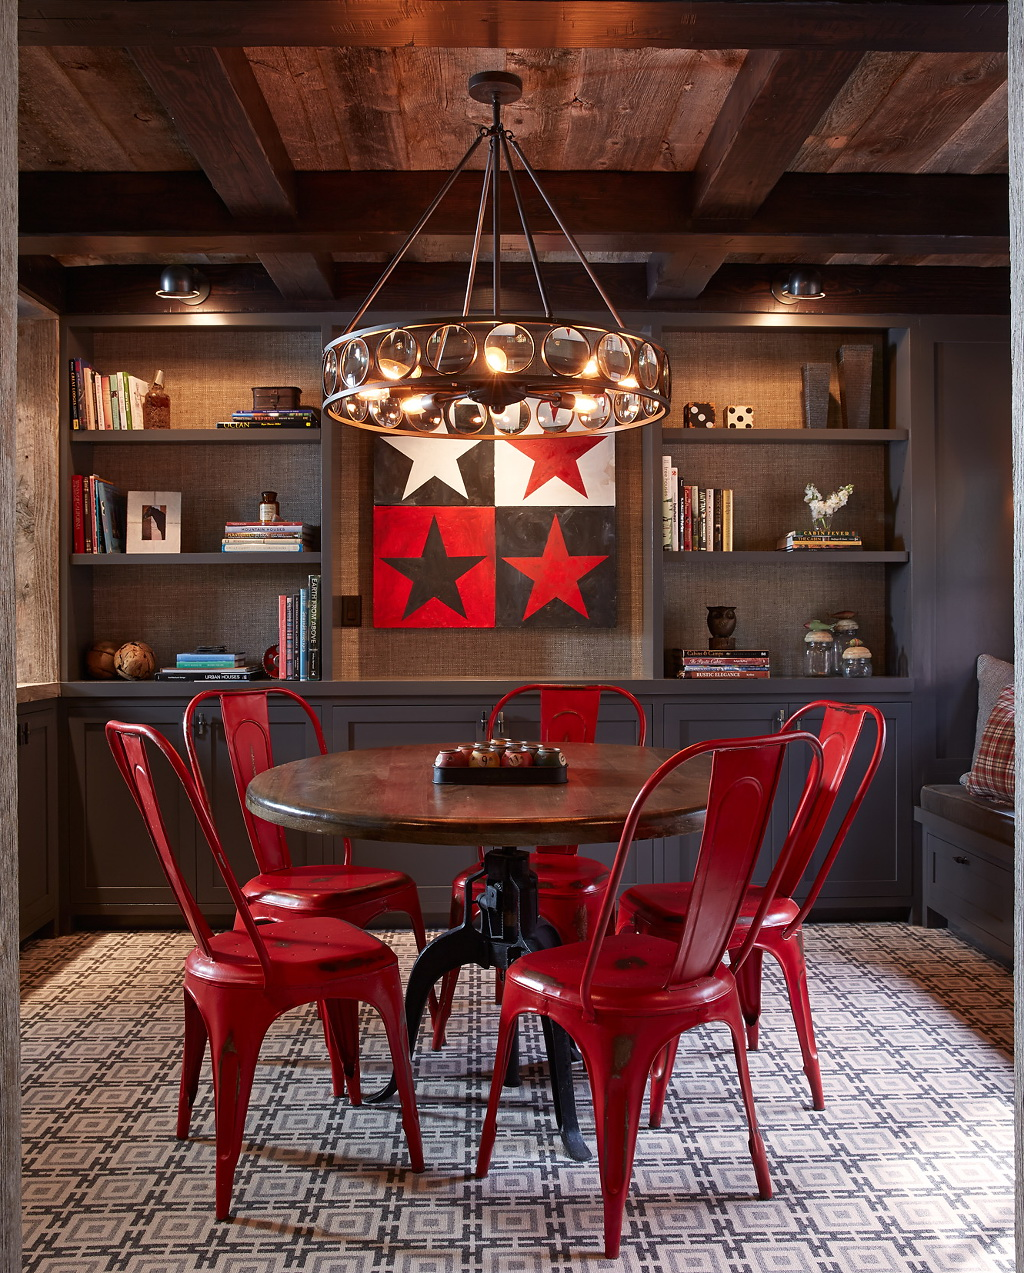 https://cdn.homedit.com/wp-content/uploads/2014/07/model-a-chair-red-version-for-dining-table.jpg